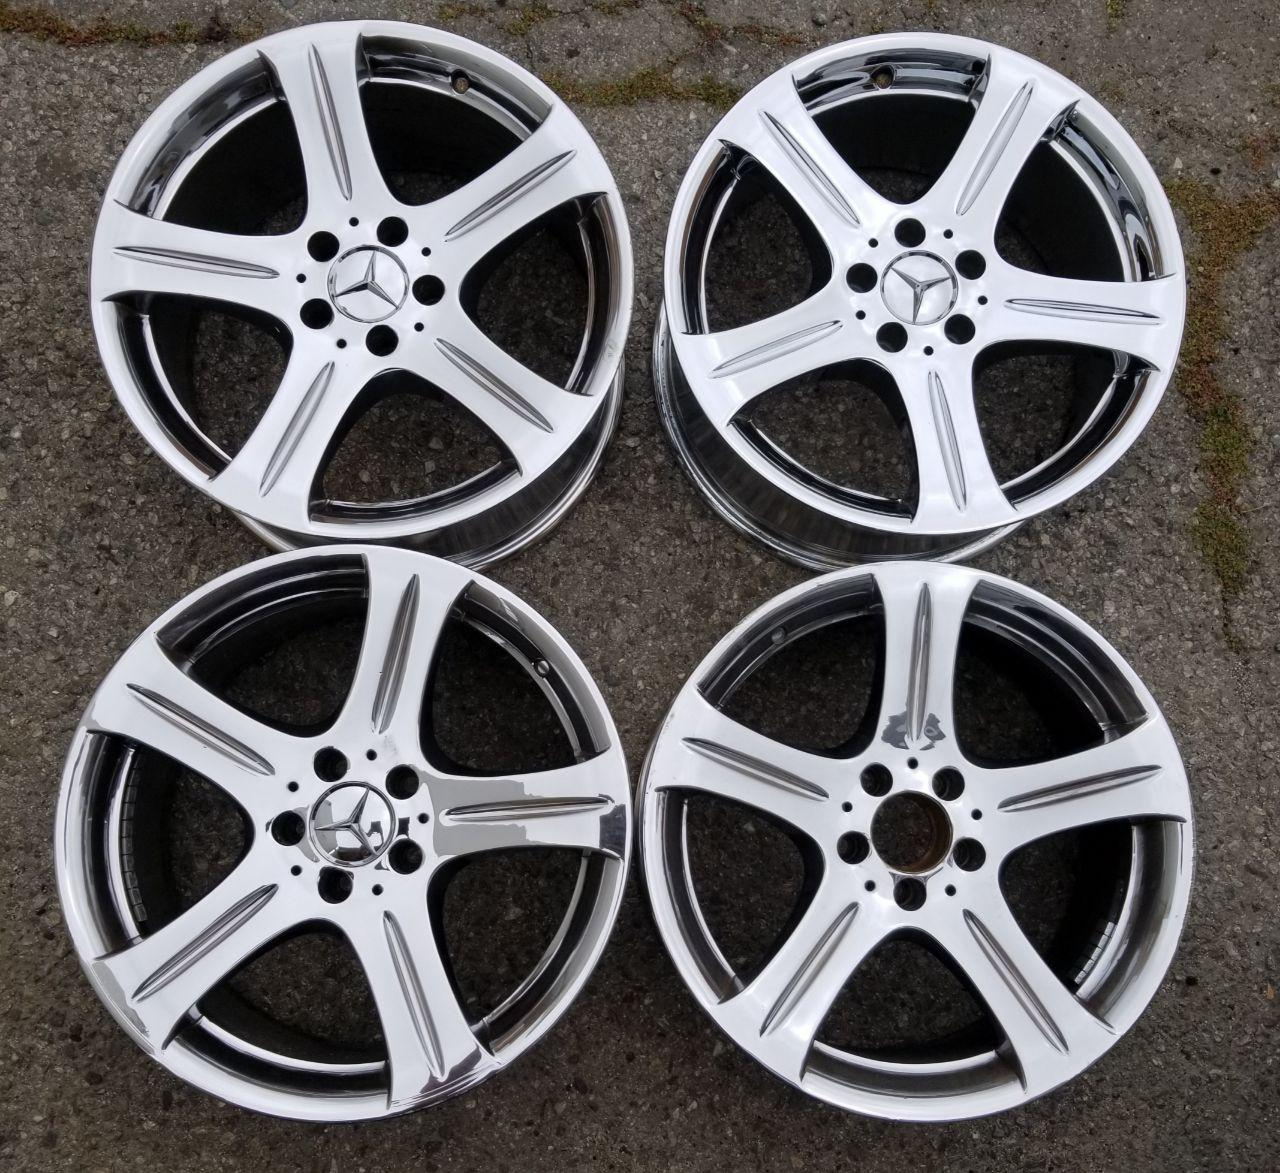 - OEM WHEELS - 2006-2007 MERCEDES CLS500/CLS550 18x9.5 5 SPOKE GROOVE Hollander #65372 /  USED